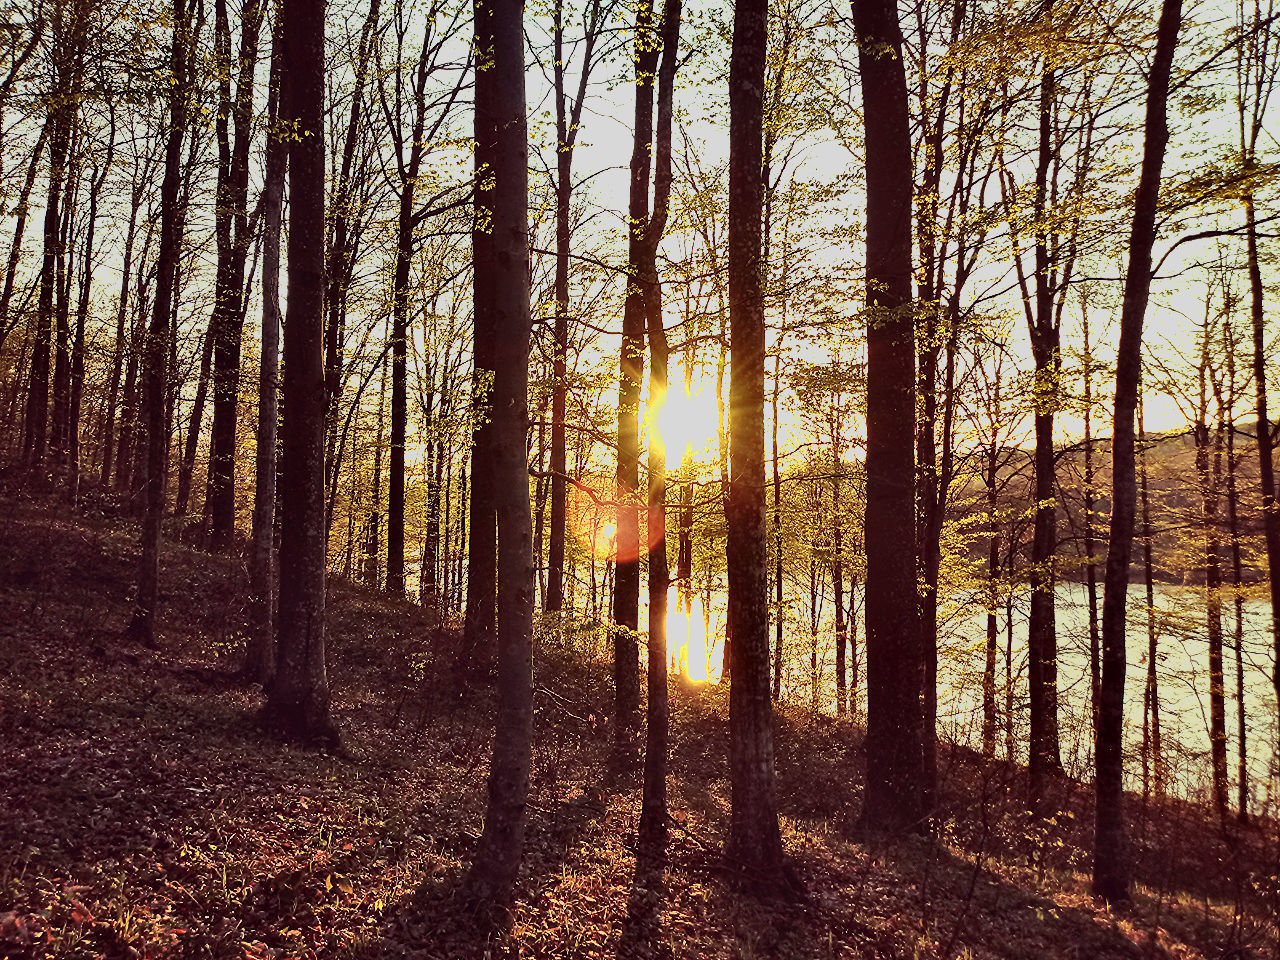 Tree Forest Nature Tree Trunk Outdoors No People Sunlight Day Beauty In Nature WoodLand Sunset Sky Landscape Tree Area Grass Walking Sun Nature Sunsetcolors